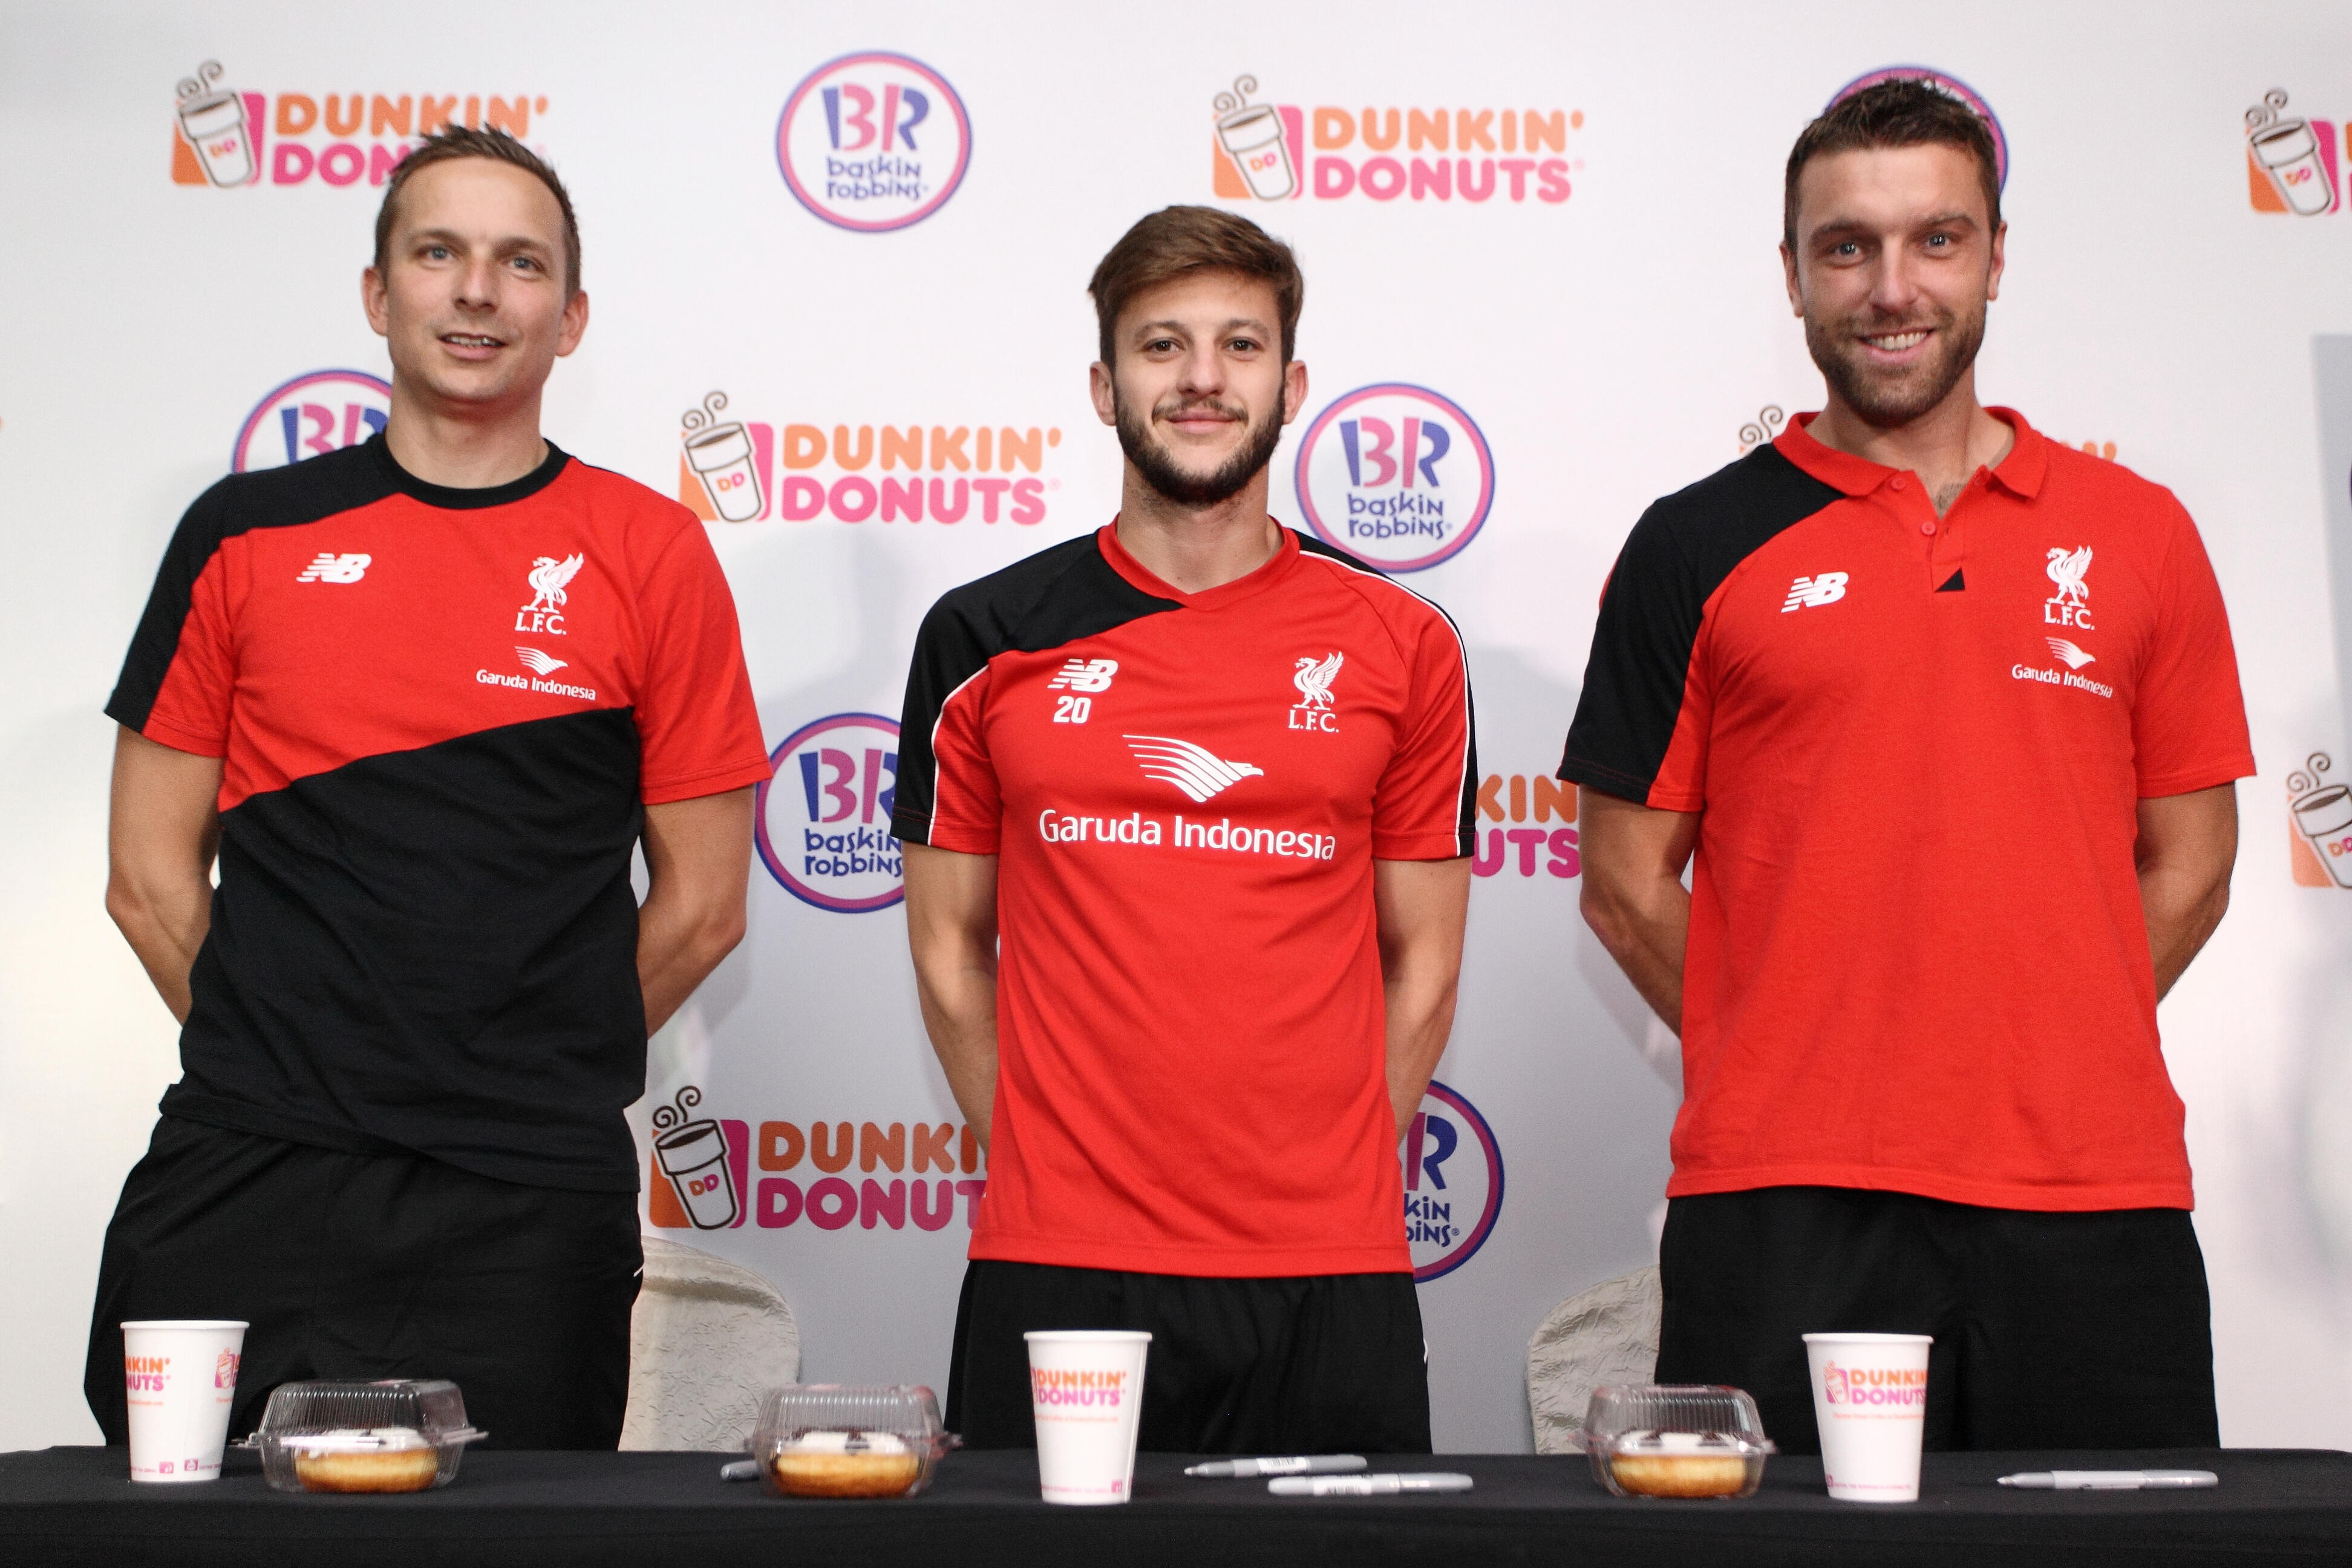 Dunkin donuts and baskin robbins give lucky football fans the dunkin donuts and baskin robbins give lucky football fans the ultimate liverpool fc experience in kuala lumpur m4hsunfo